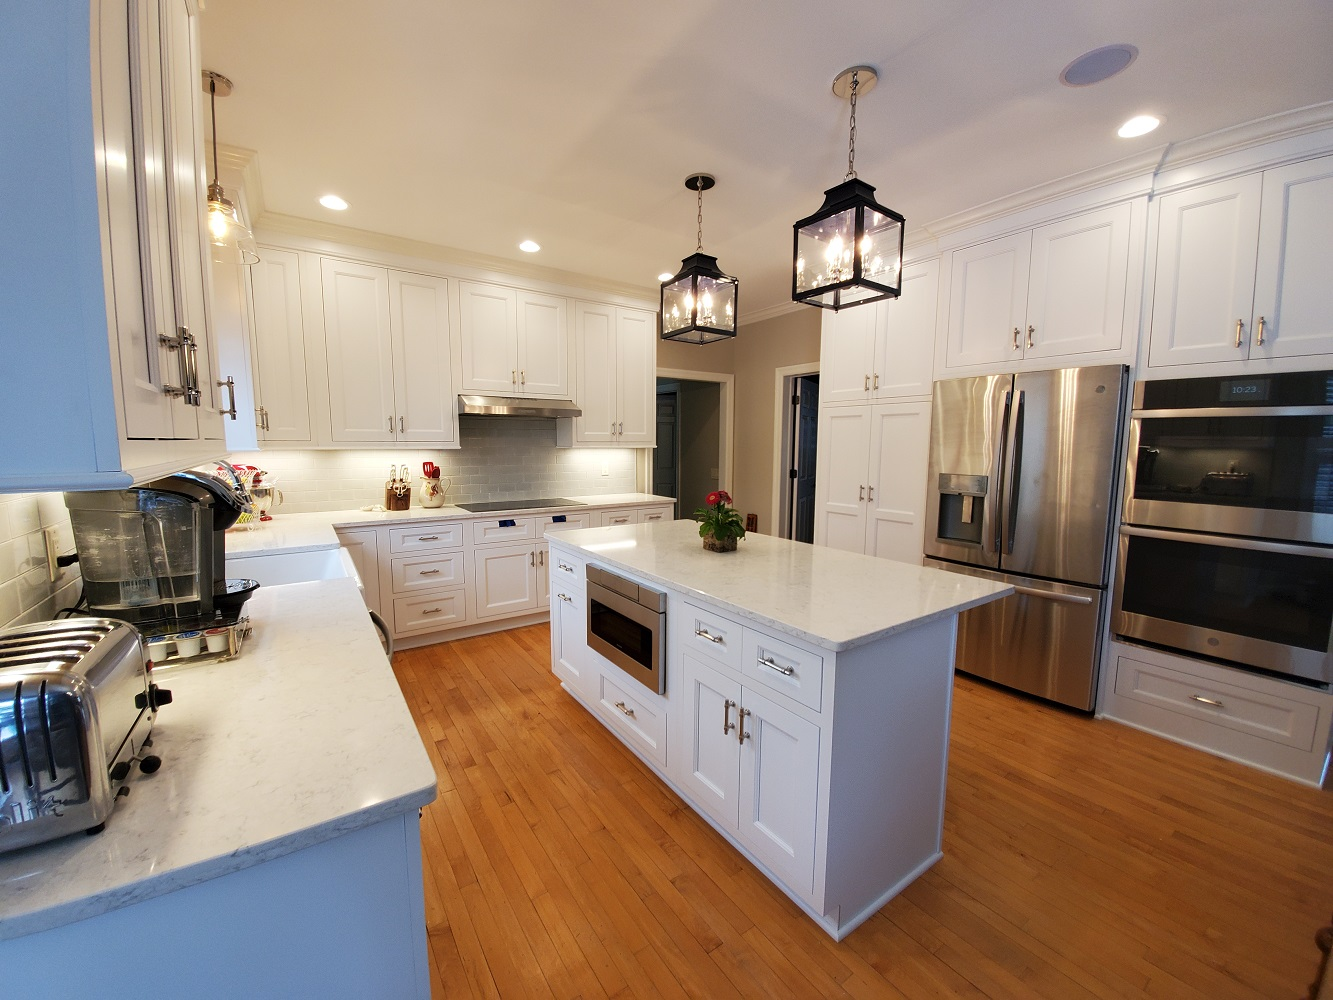 Stonefield Classic Kitchen Remodel in Middleton, WI